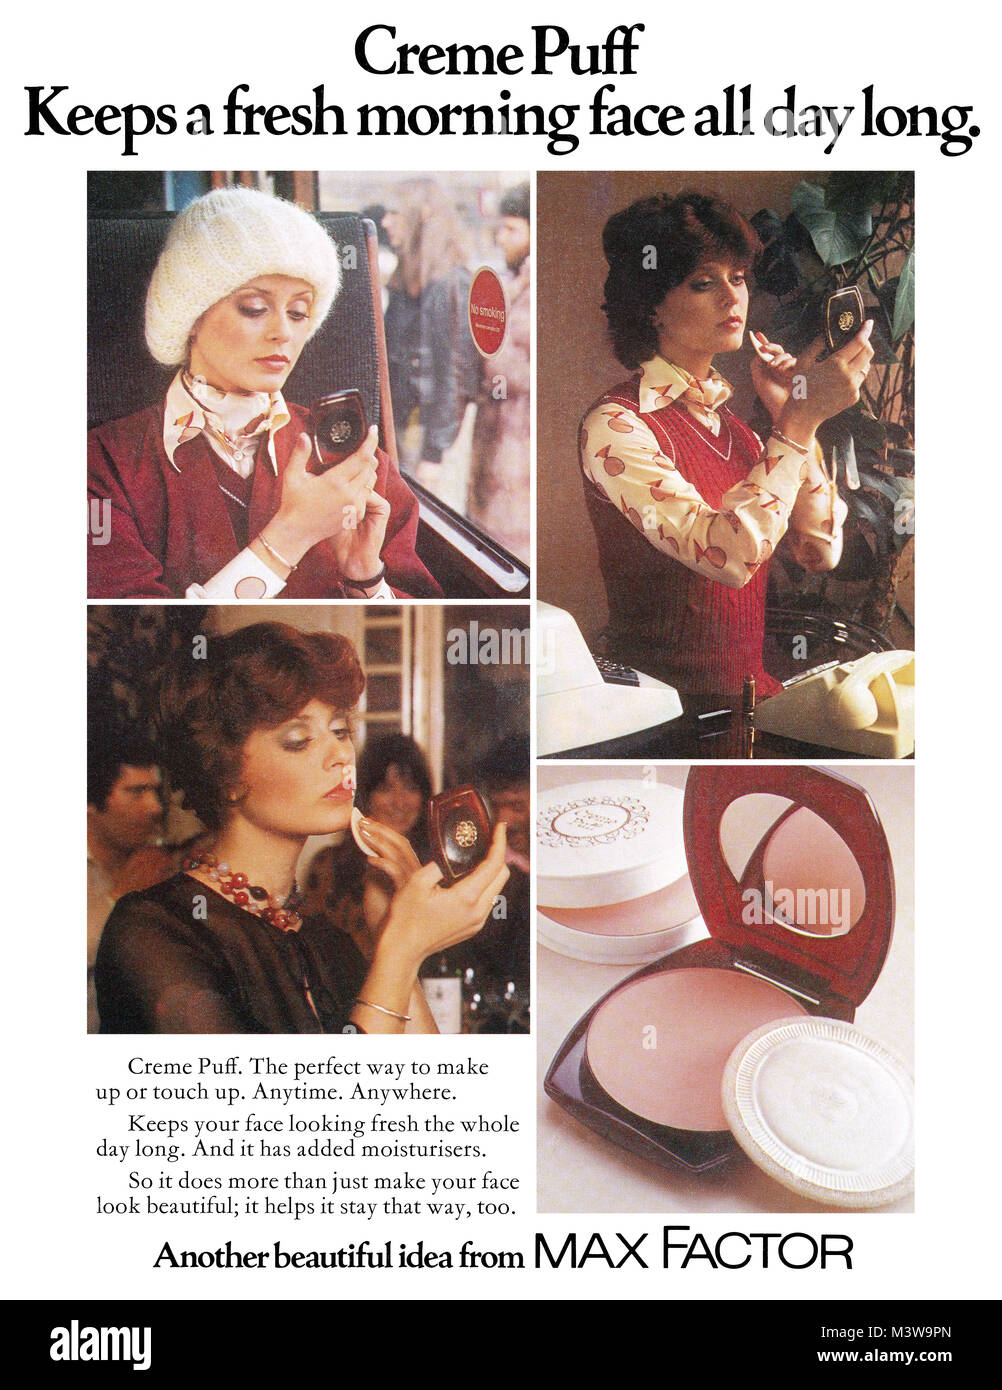 1974 British advertisement for Max Factor Creme Puff face powder. - Stock Image